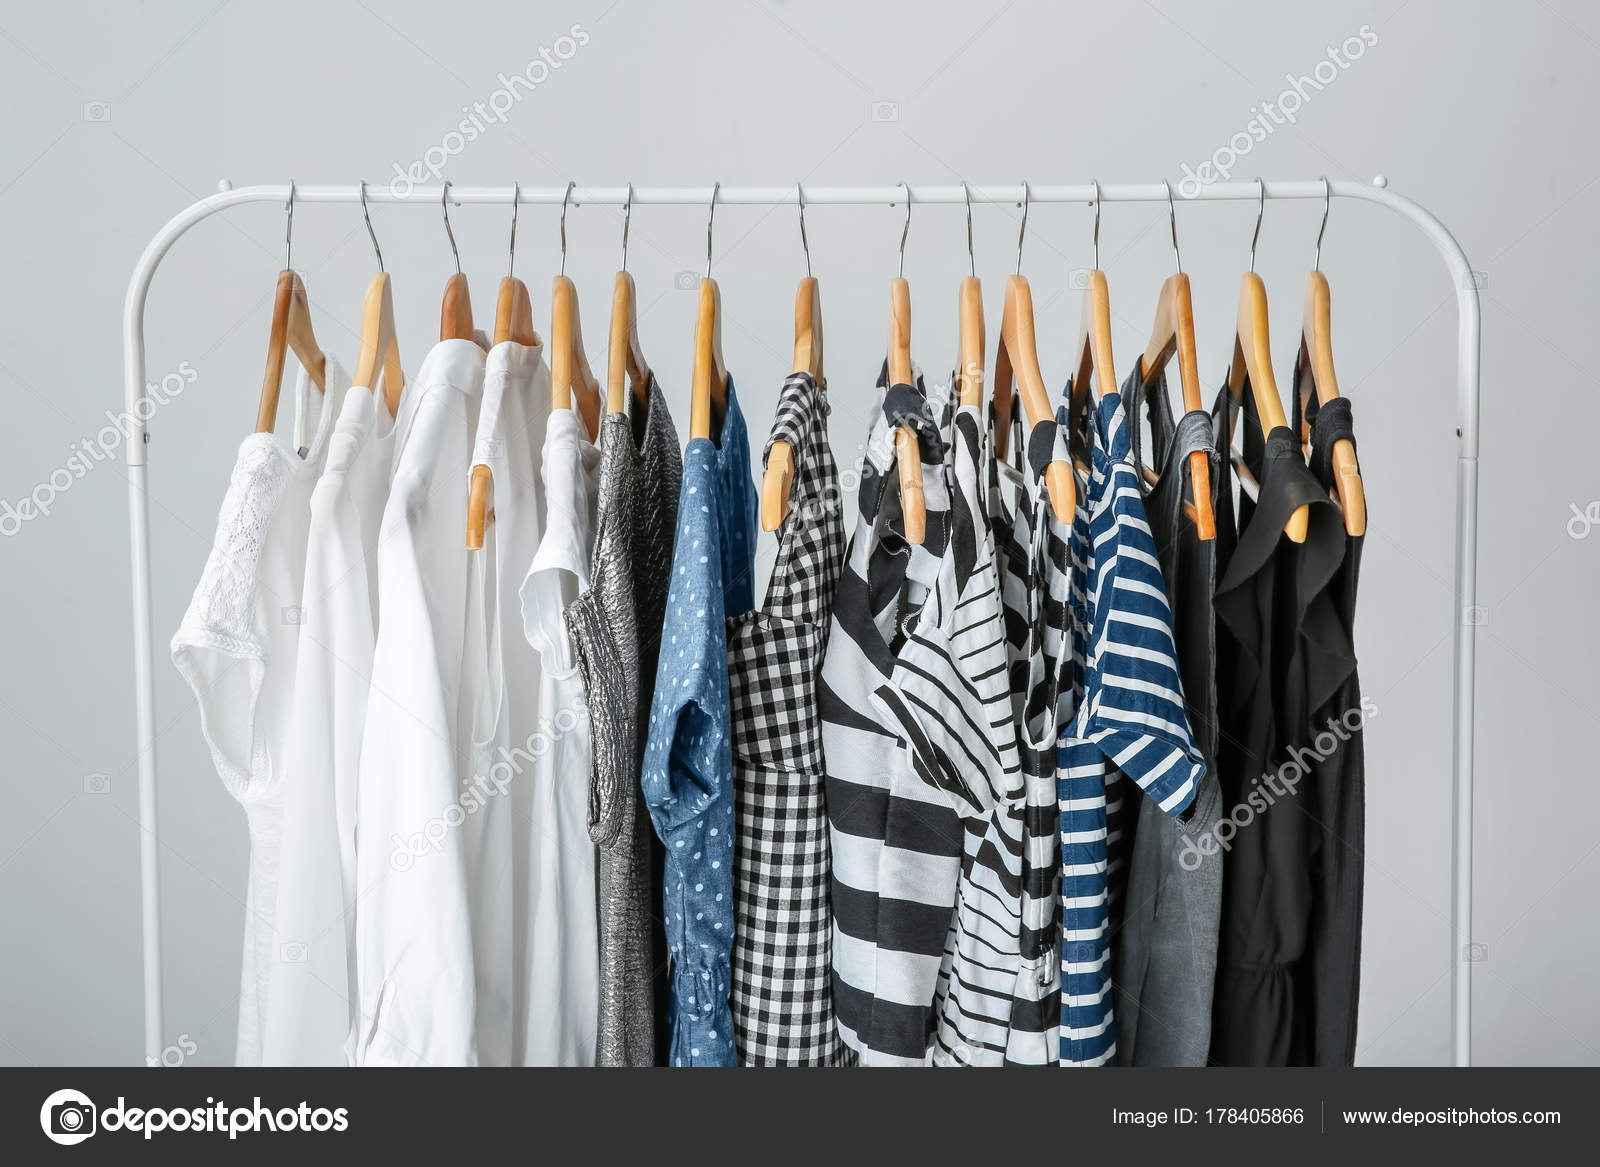 Stylish Clothes Stylish Clothes Hanging On Wardrobe Stand Stock Photo